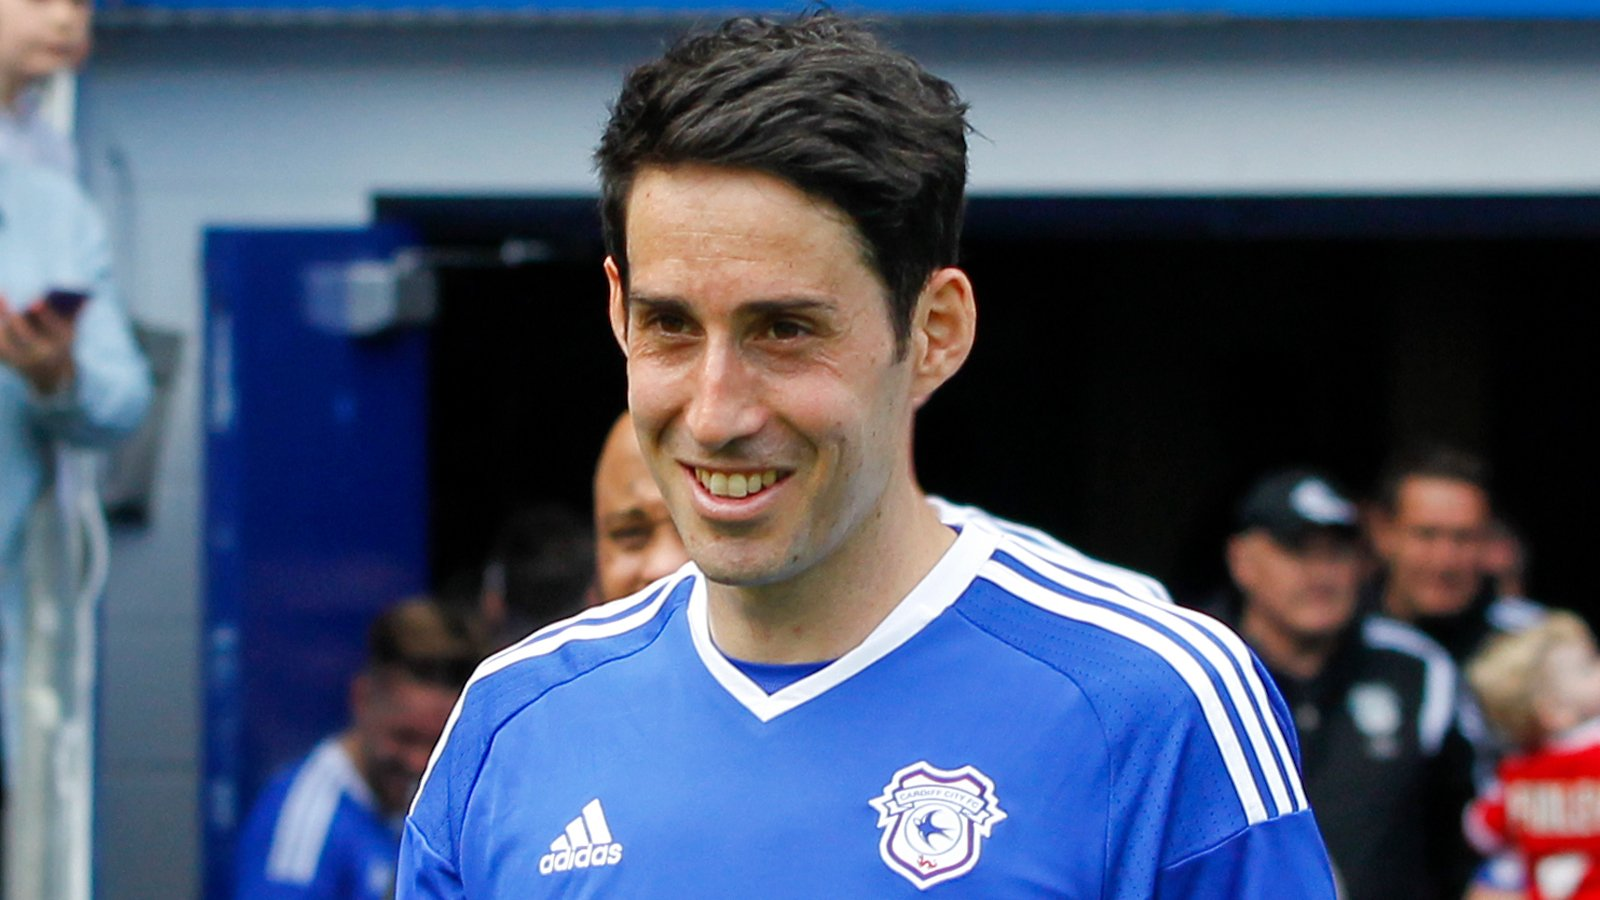 Muere Peter Whittingham, ídolo del Cardiff City